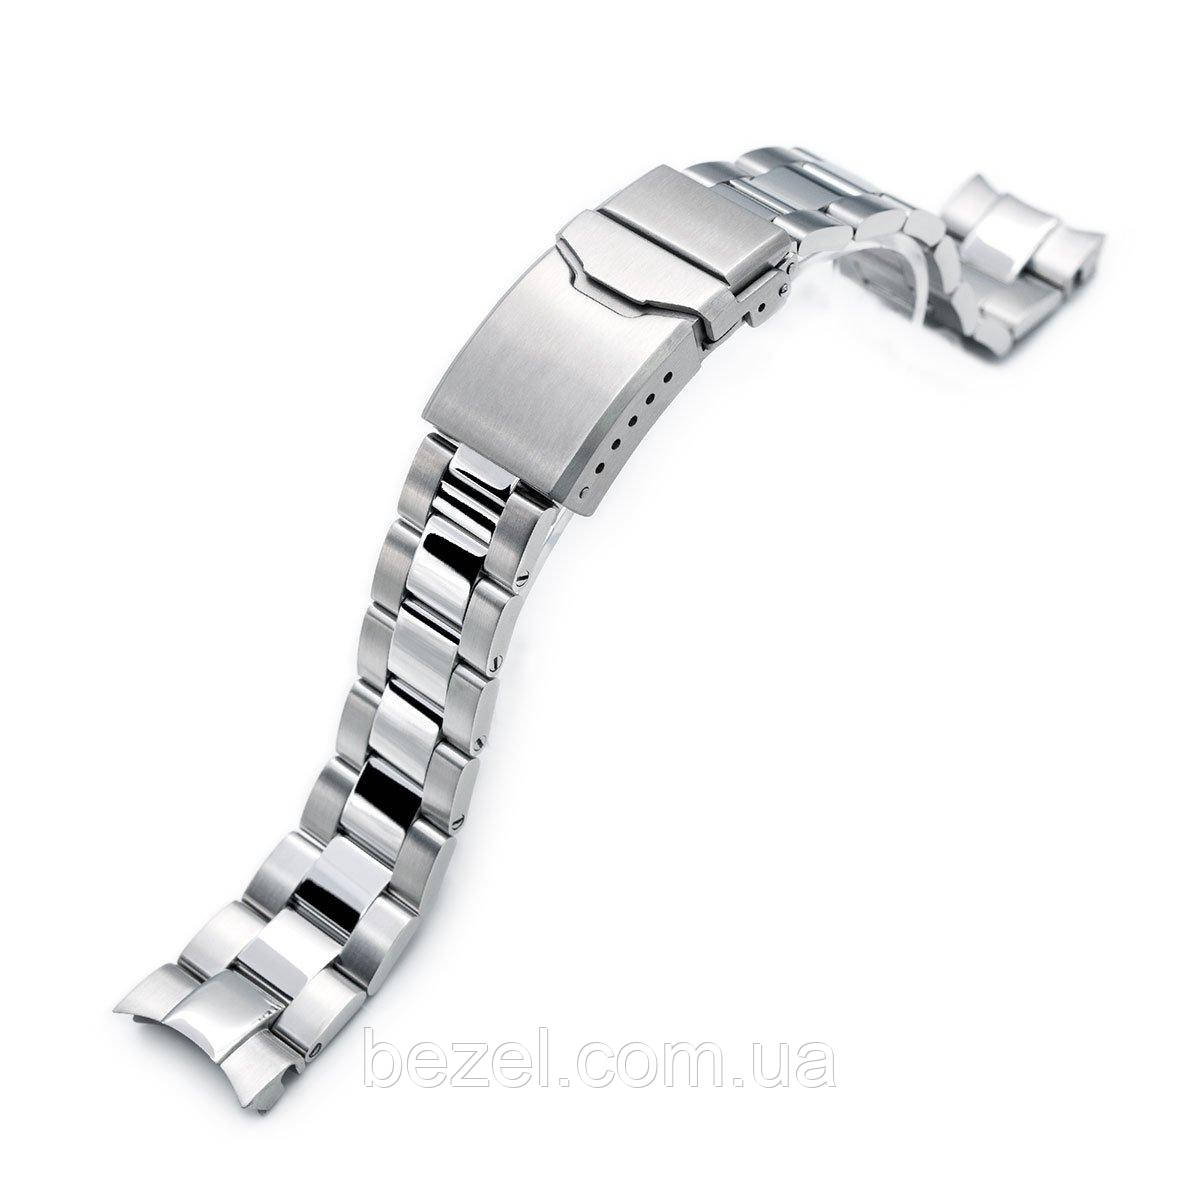 20mm Super 3D Oyster watch band for Seiko Alpinist SARB017, Button Chamfer Clasp Brushed & Polished